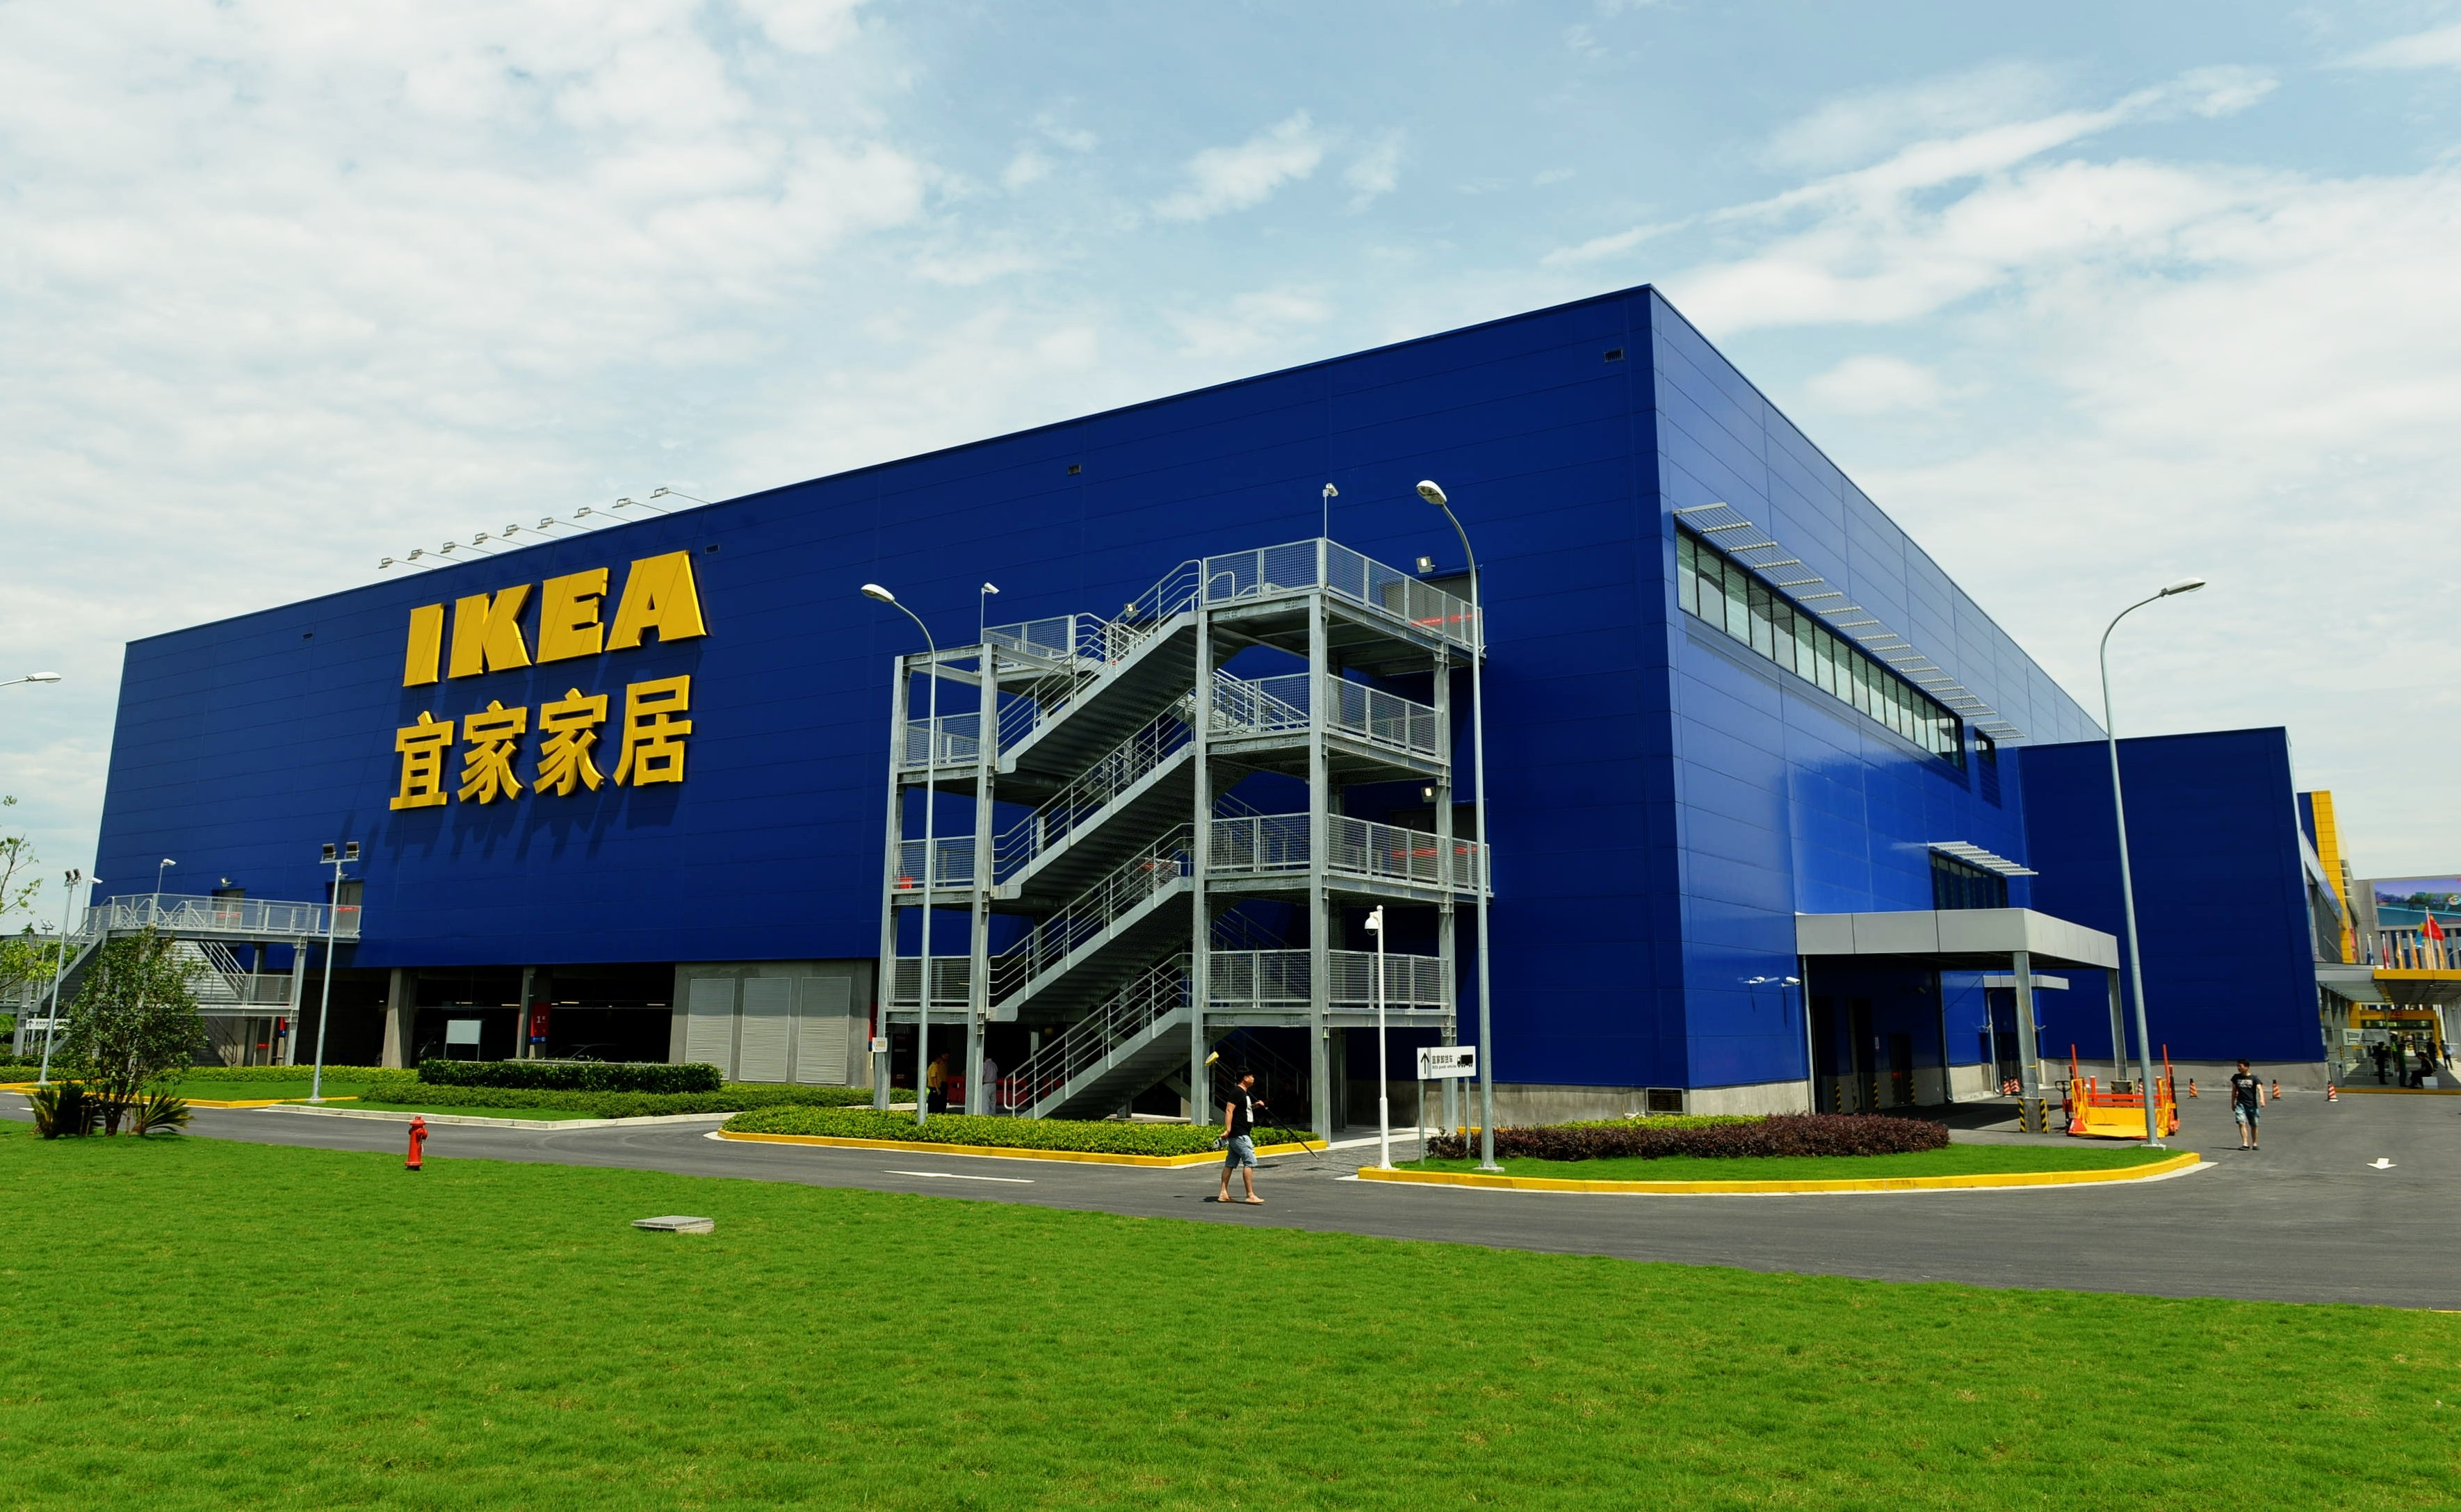 IKEA to up China investment, presence to tap home furnishing potential